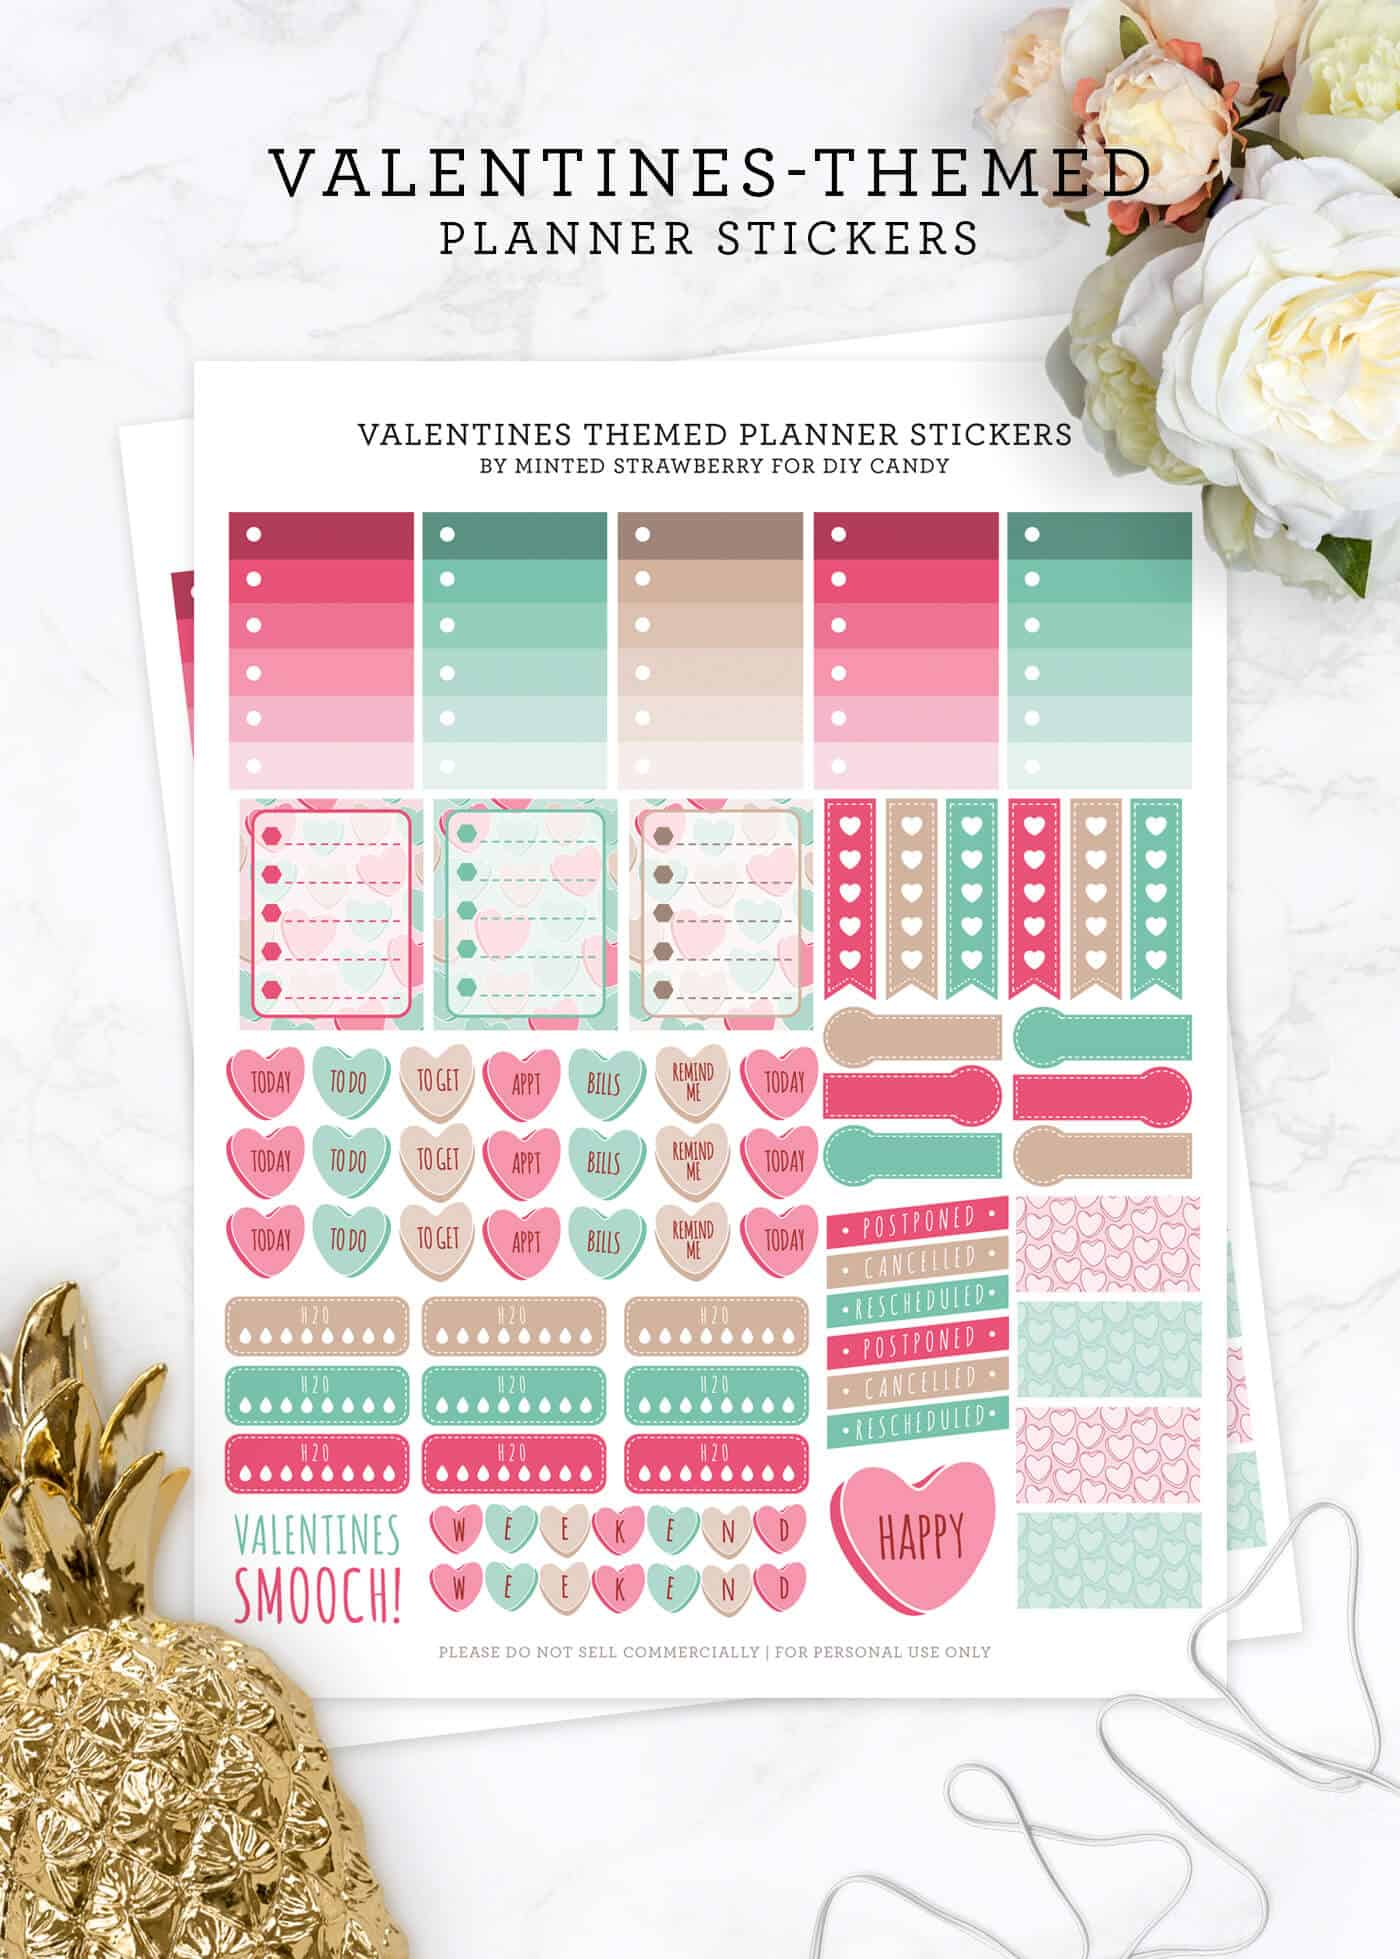 Free Valentines Planner Stickers with a Cute Theme